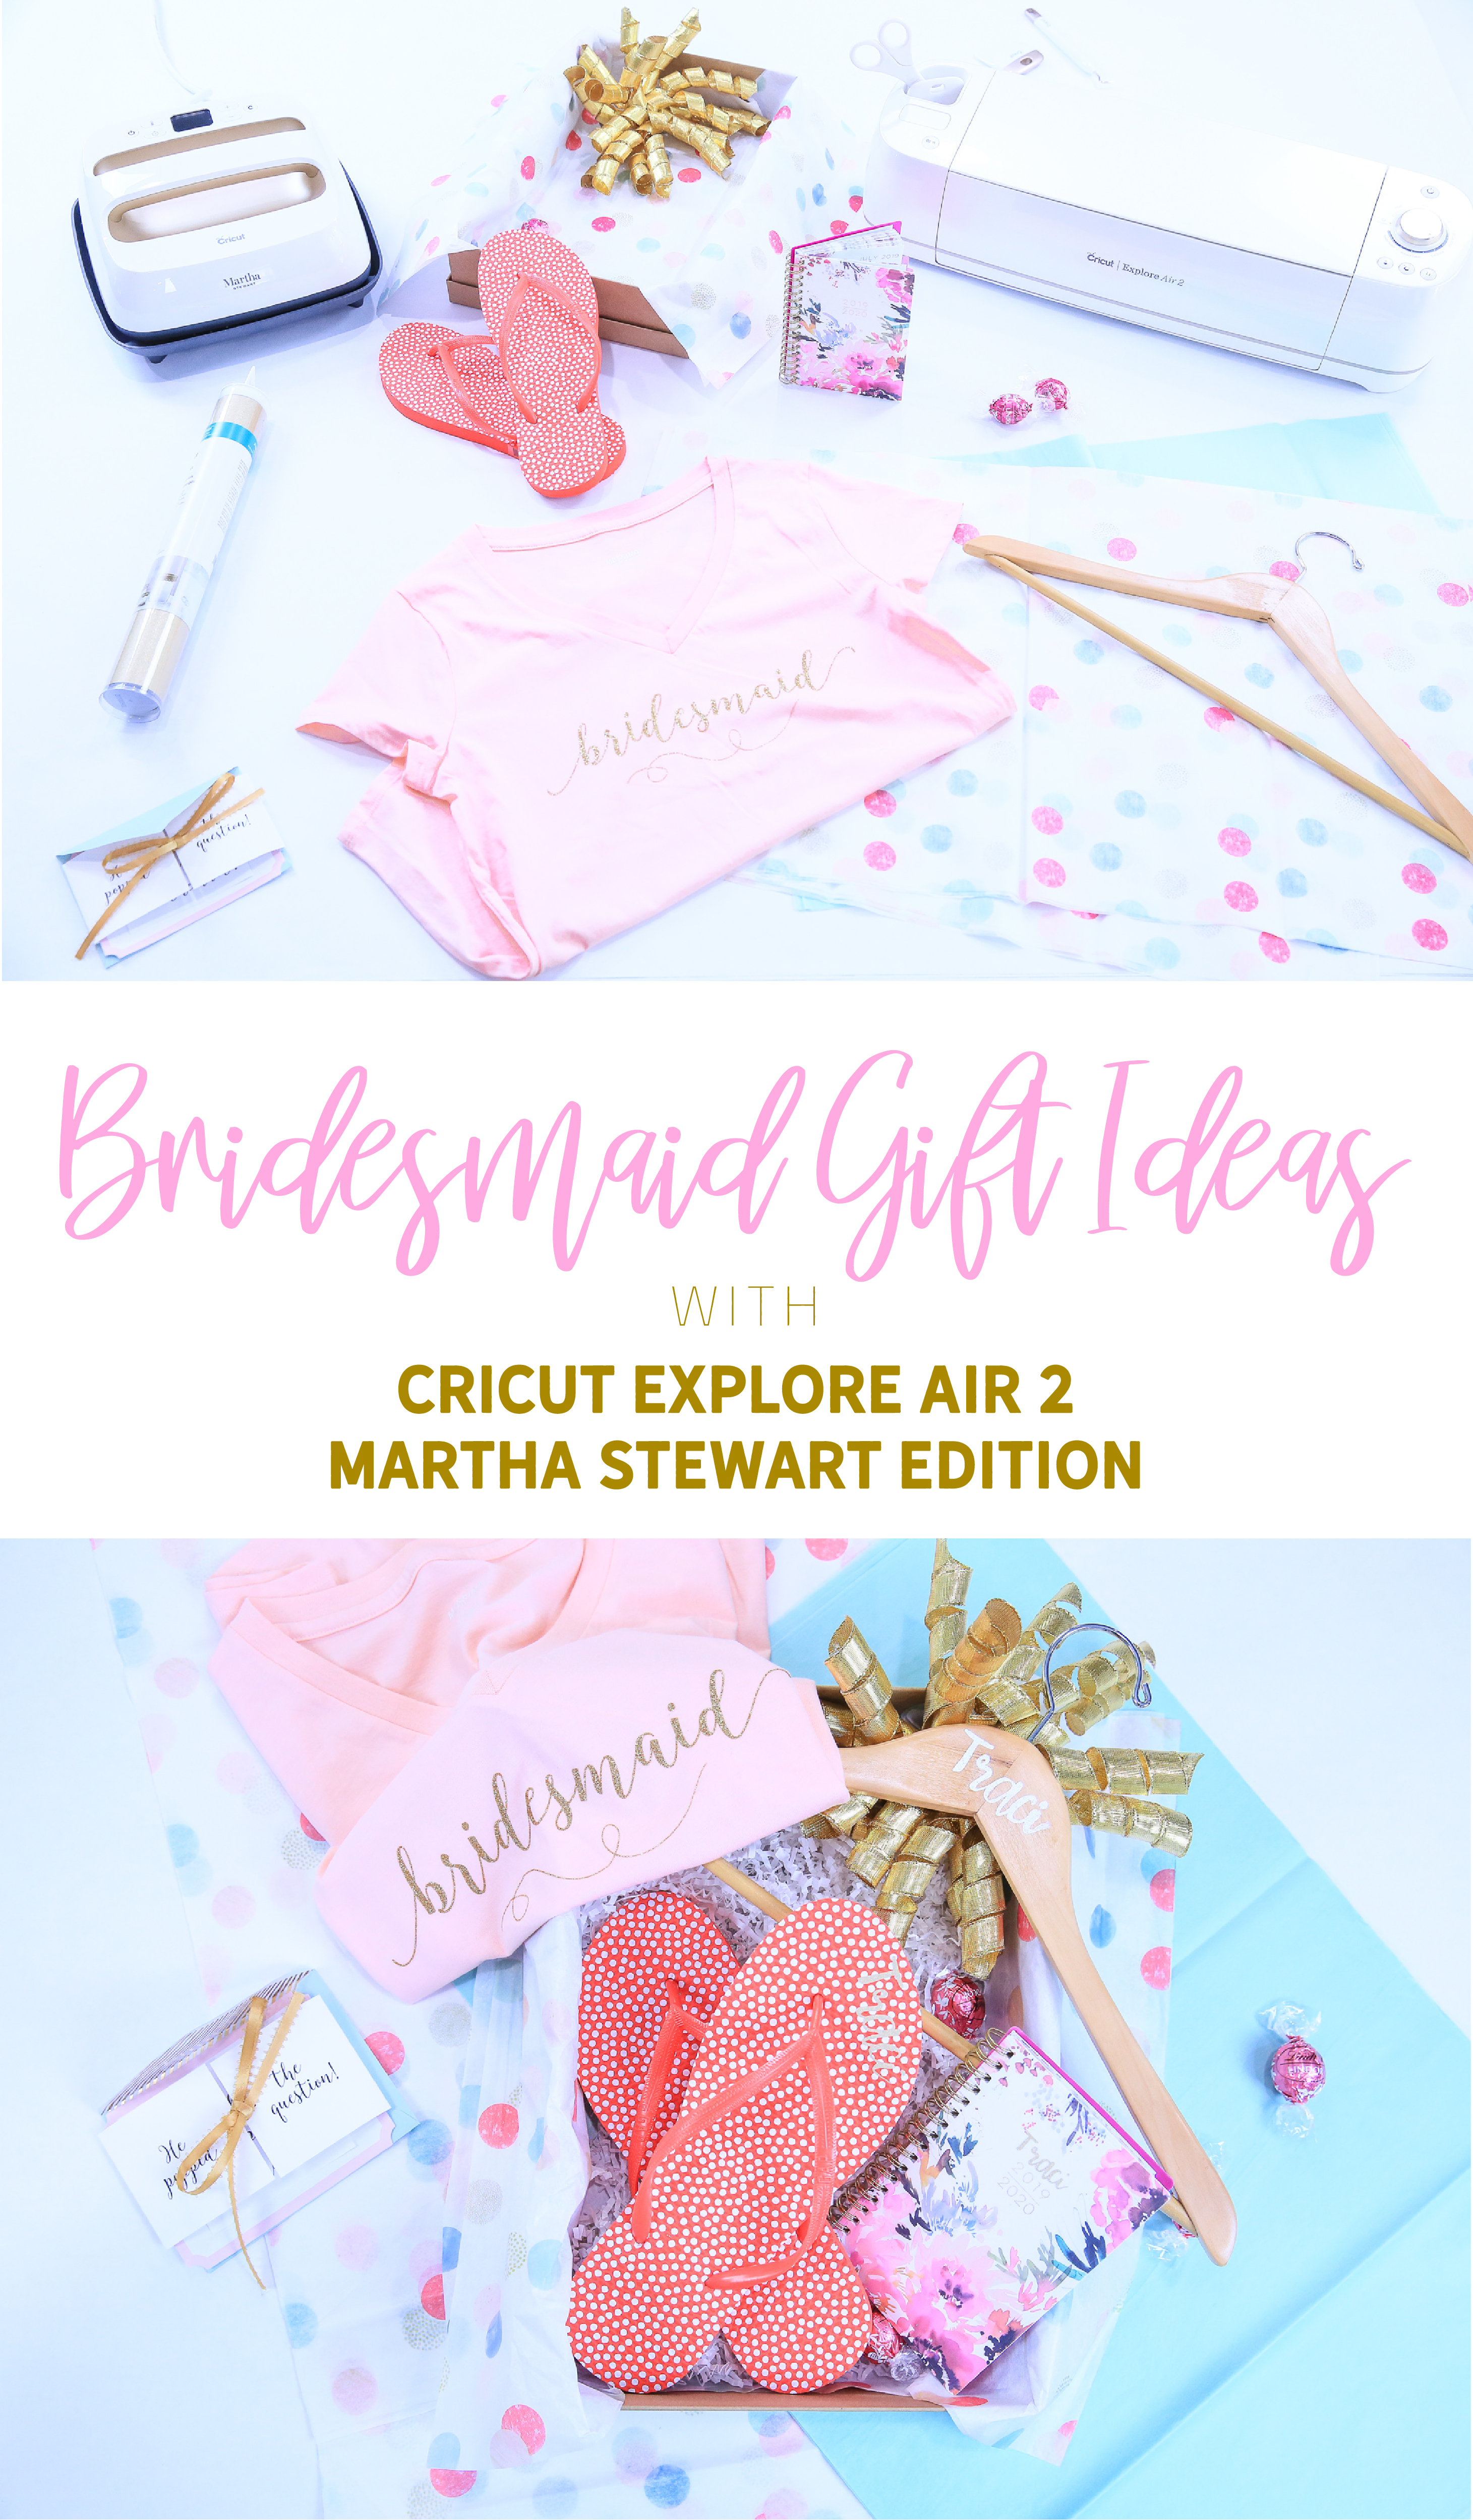 Bridesmaid Gift Ideas with your Cricut | Make your wedding perfectly unique! | Cricut Crafting with Kim Byers at The Celebration Shoppe